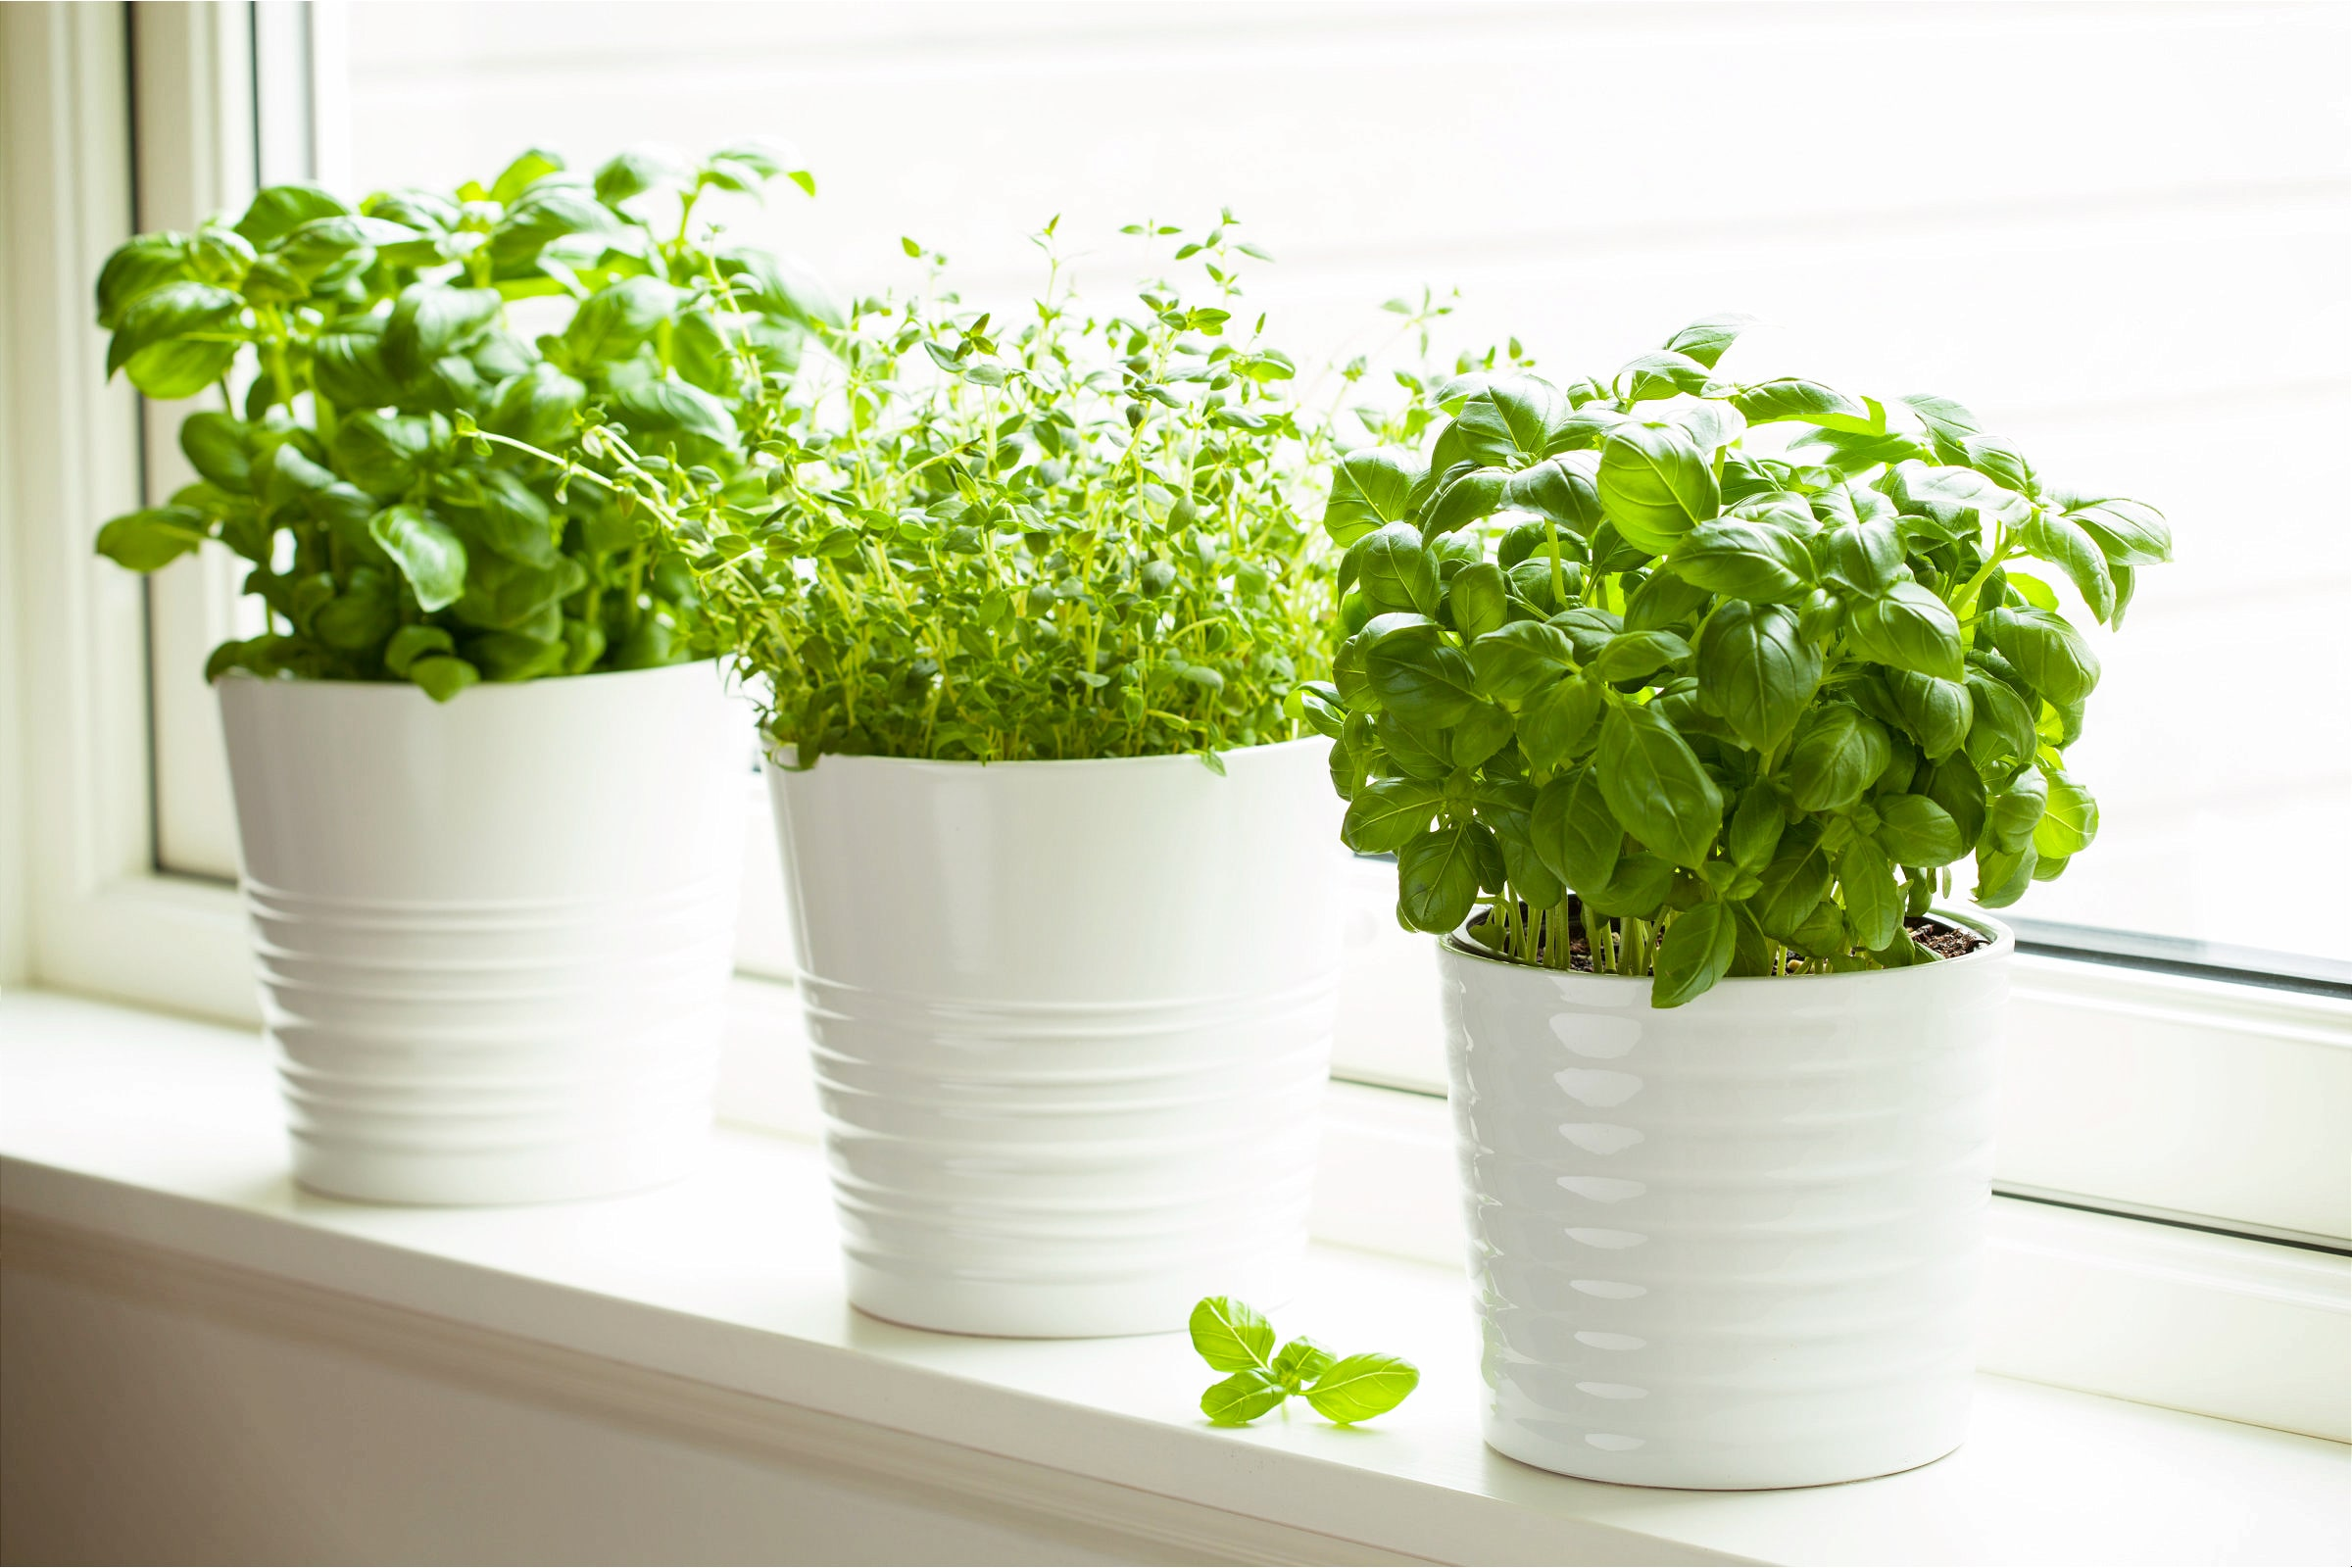 Growing Herbs Indoors (Basil And Thyme)